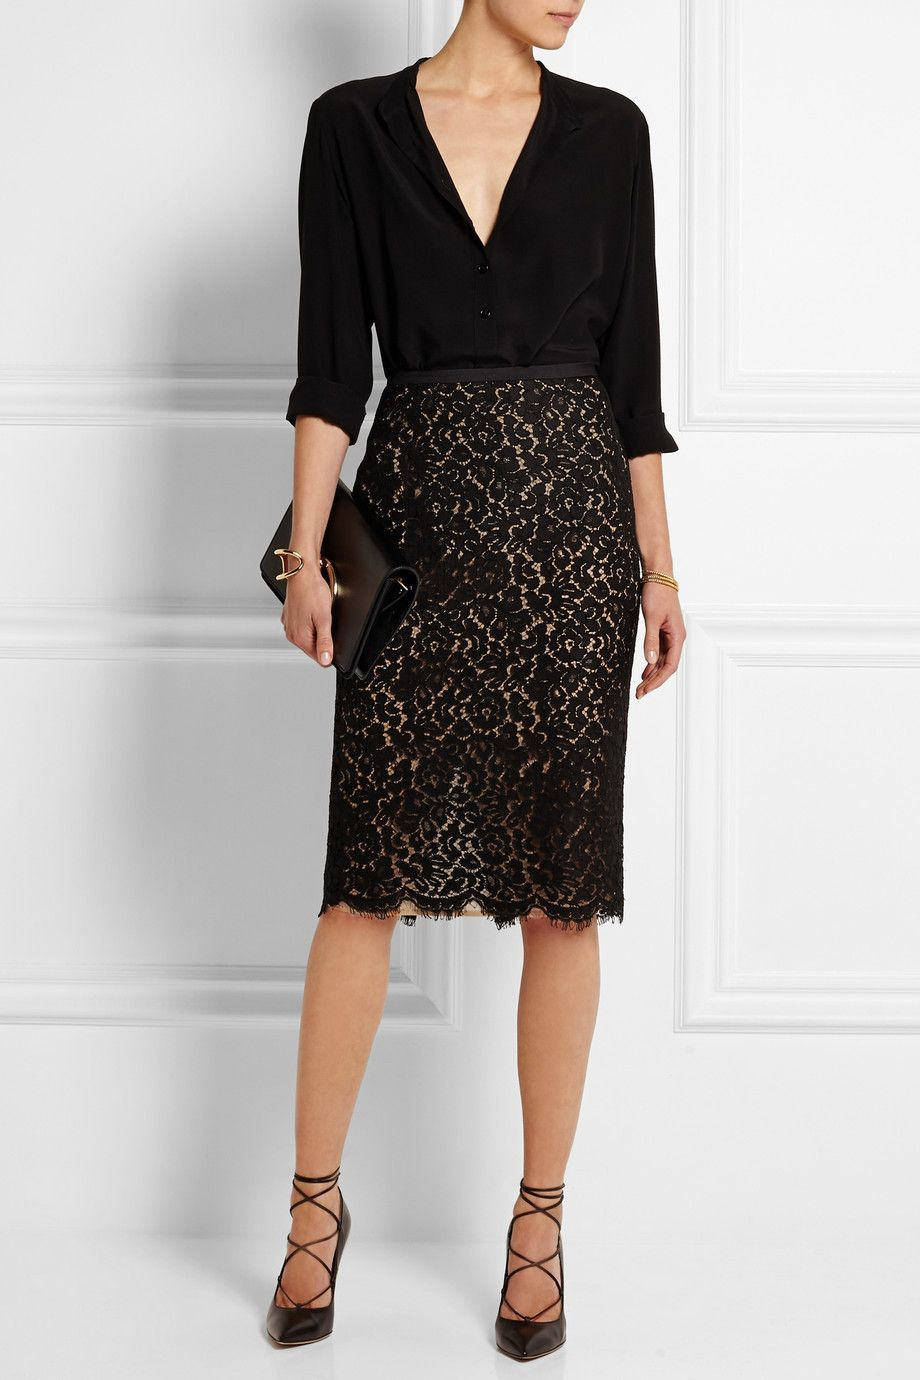 How To Wear Black Lace Skirt